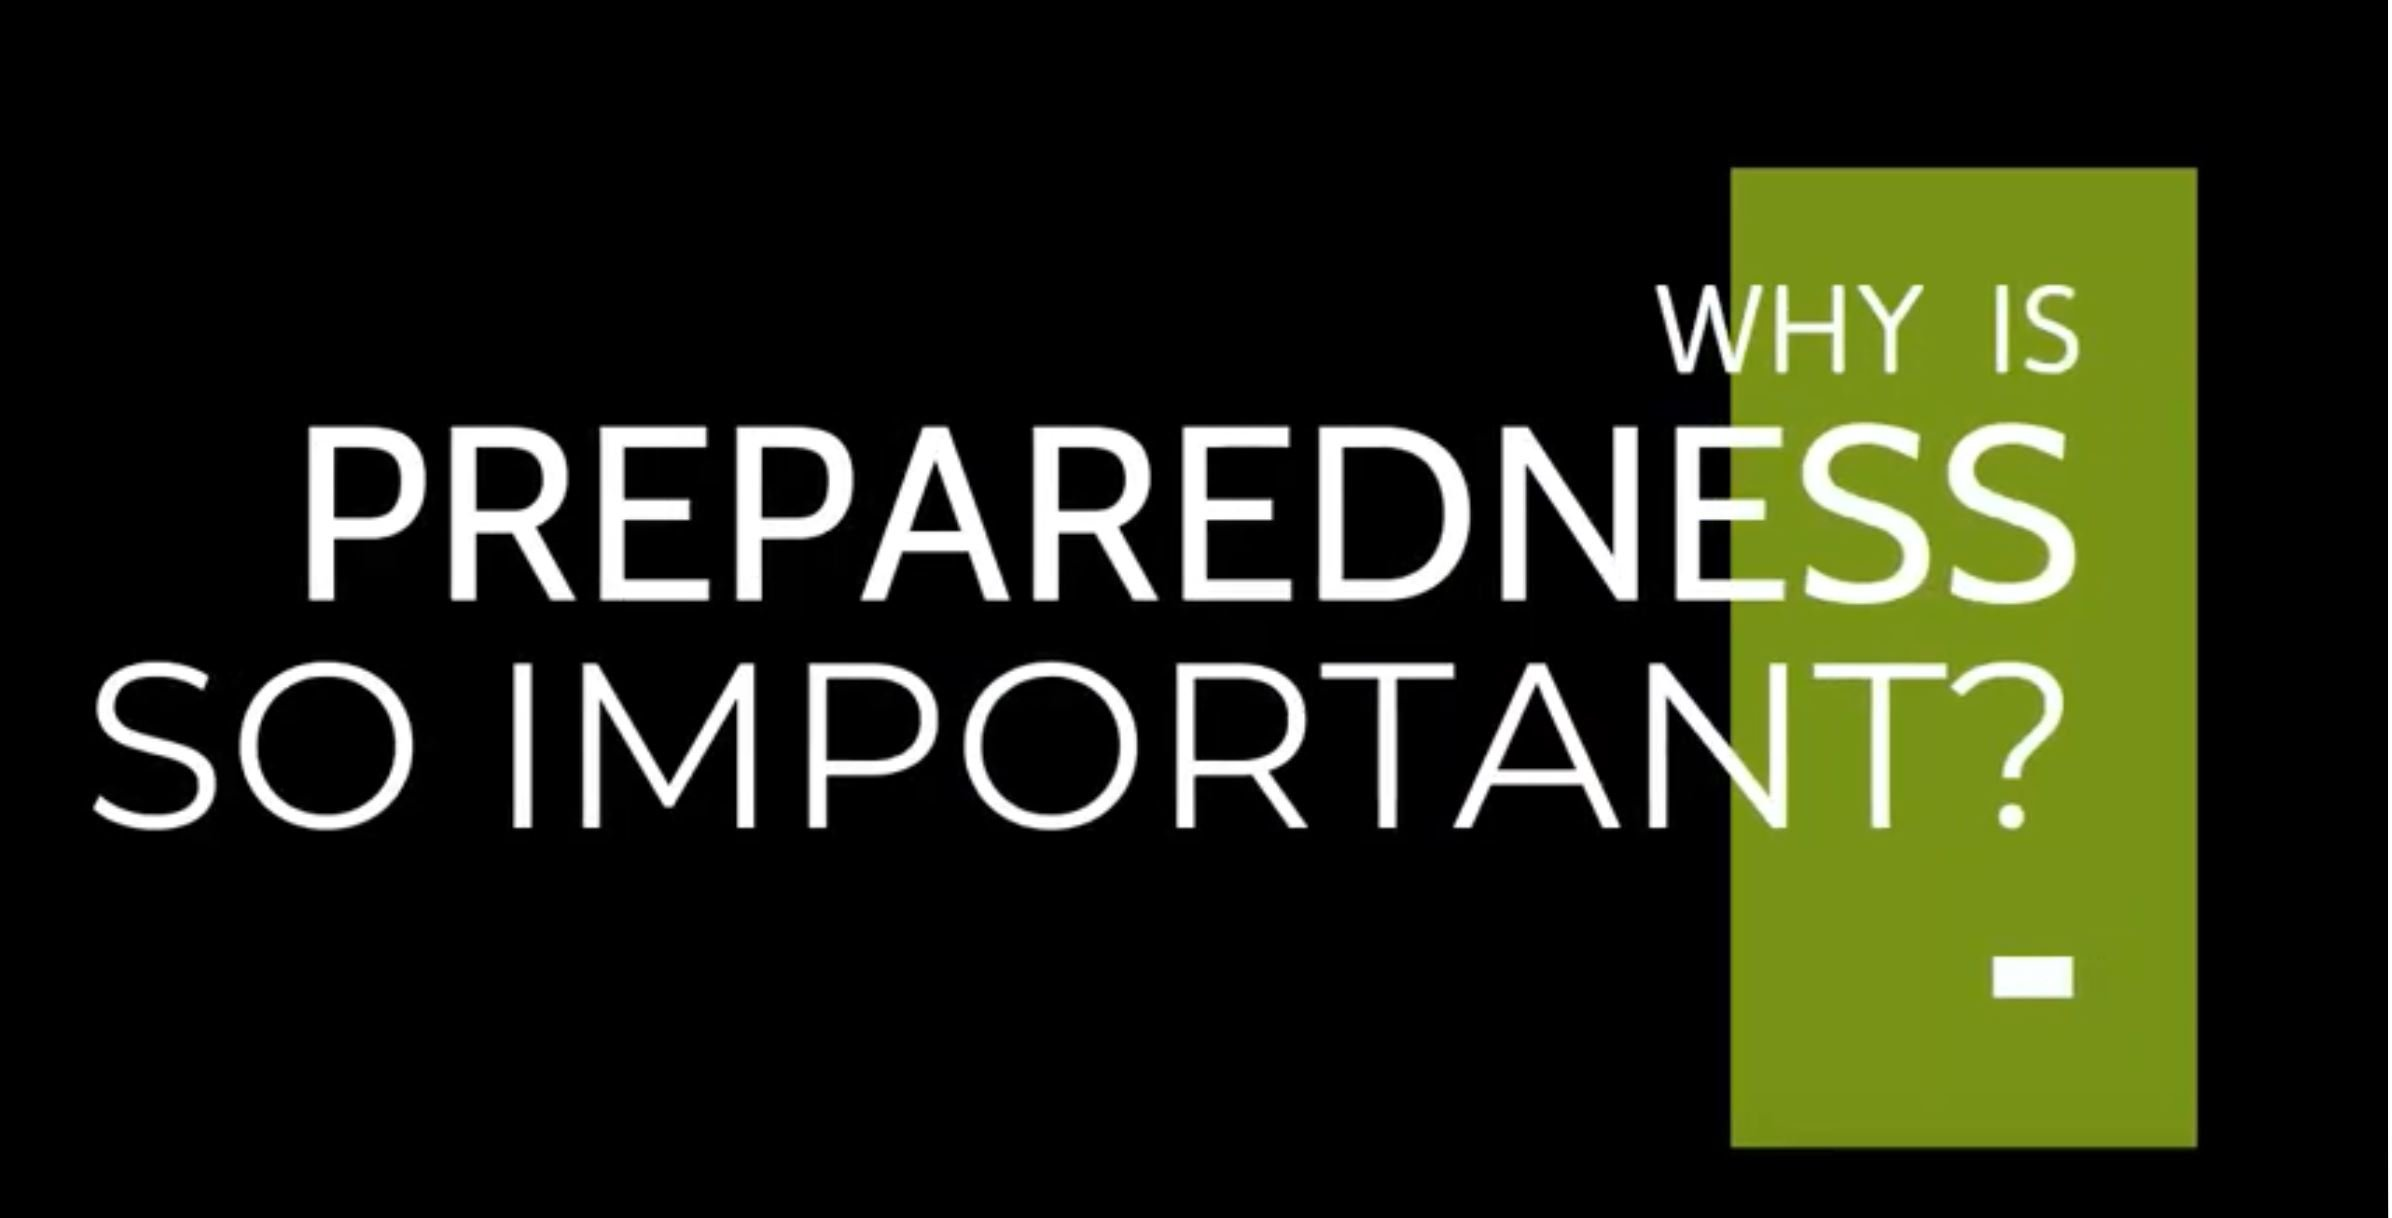 Why is preparedness so important